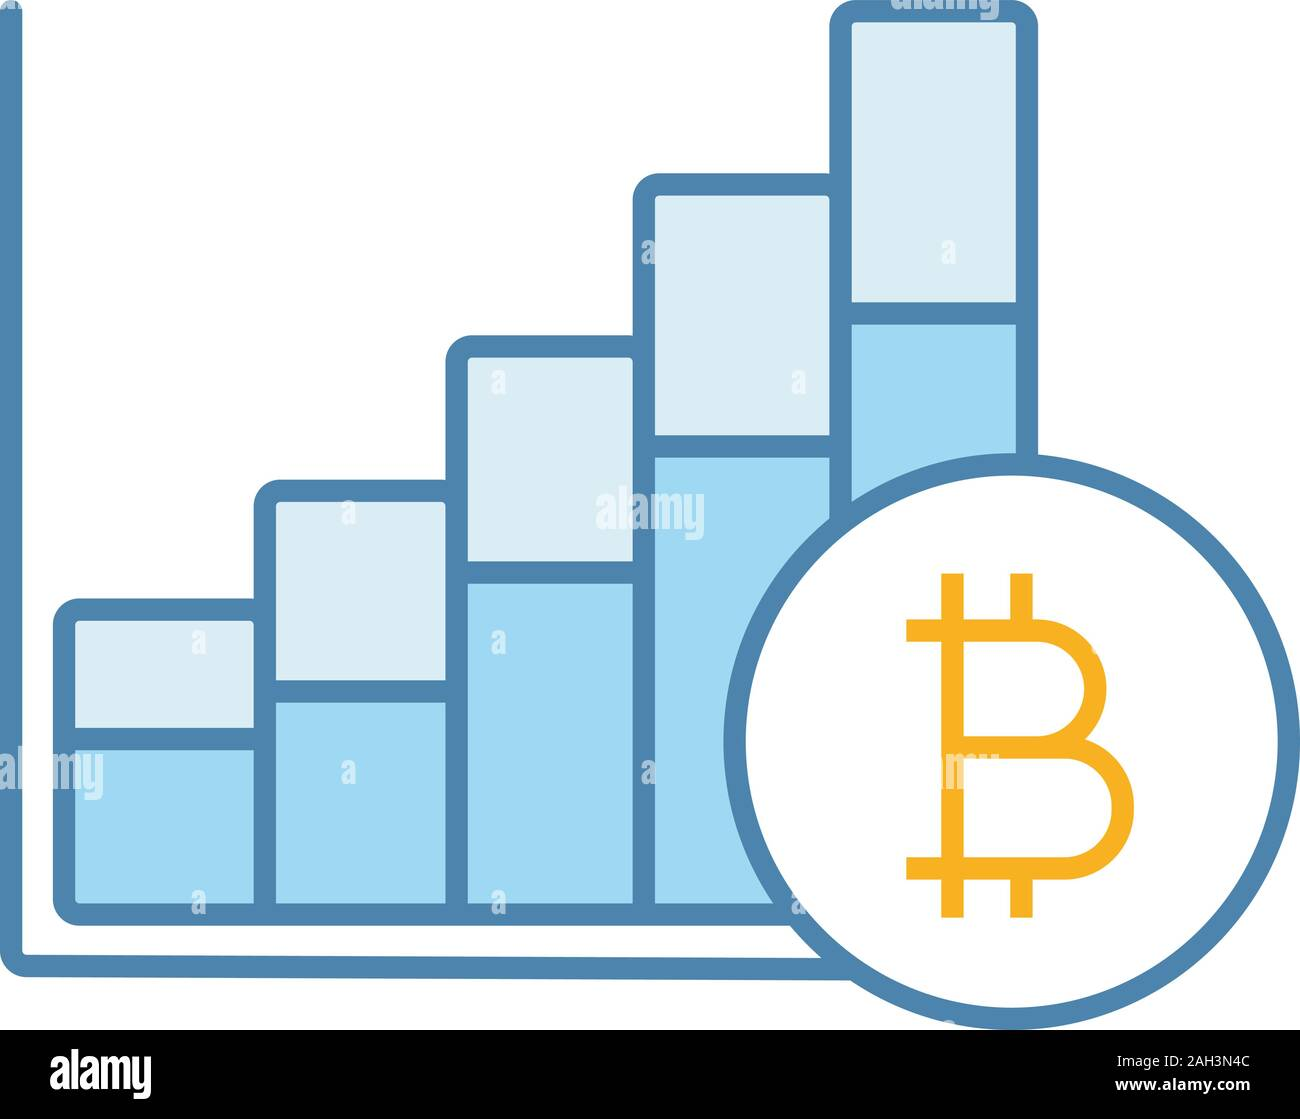 Bitcoin market growth chart color icon. Cryptocurrency prices rising. Statistics  diagram with bitcoin sign. Isolated vector illustration Stock Vector Image  & Art - Alamy